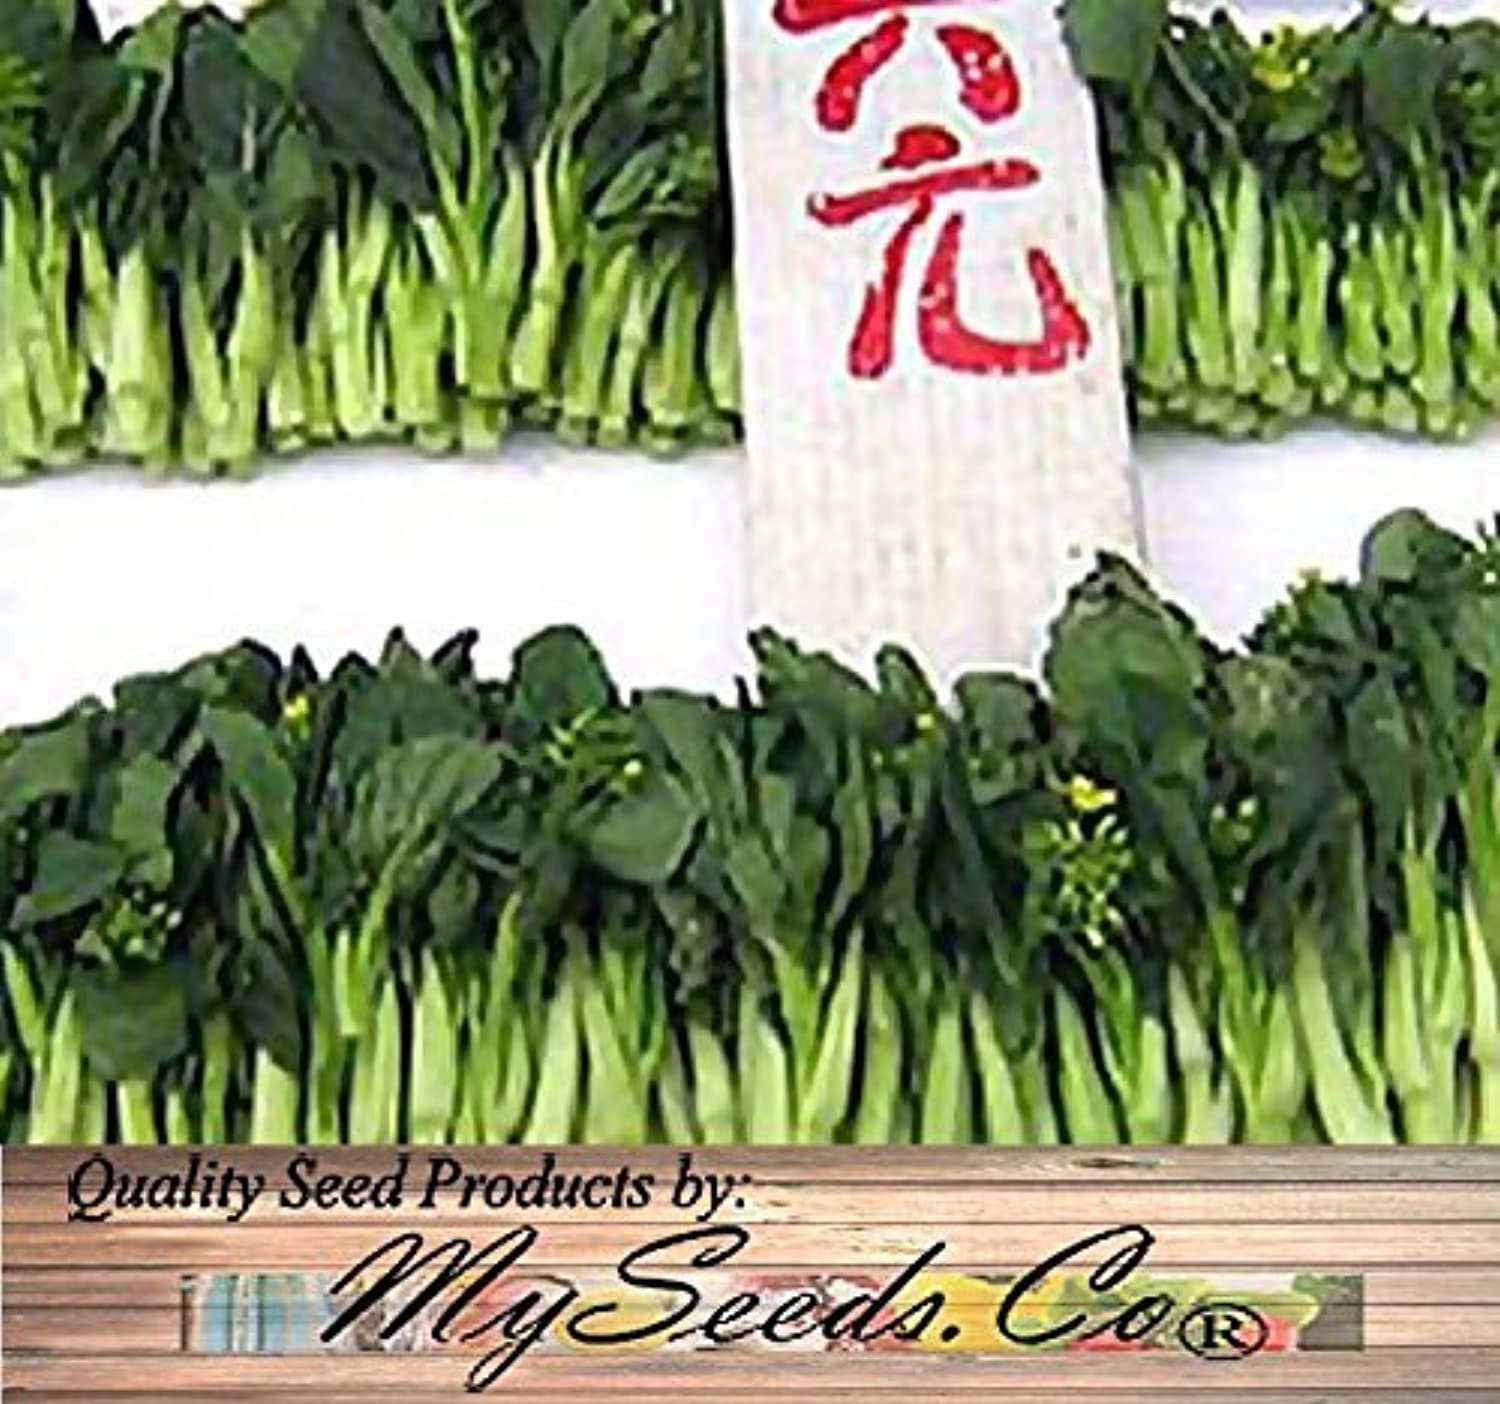 250 Choy Sum Brassica Vegetable Seed Seeds TSOI SIM CHOY SIM  EXCELLENT FLAVOR by MySeeds.Co